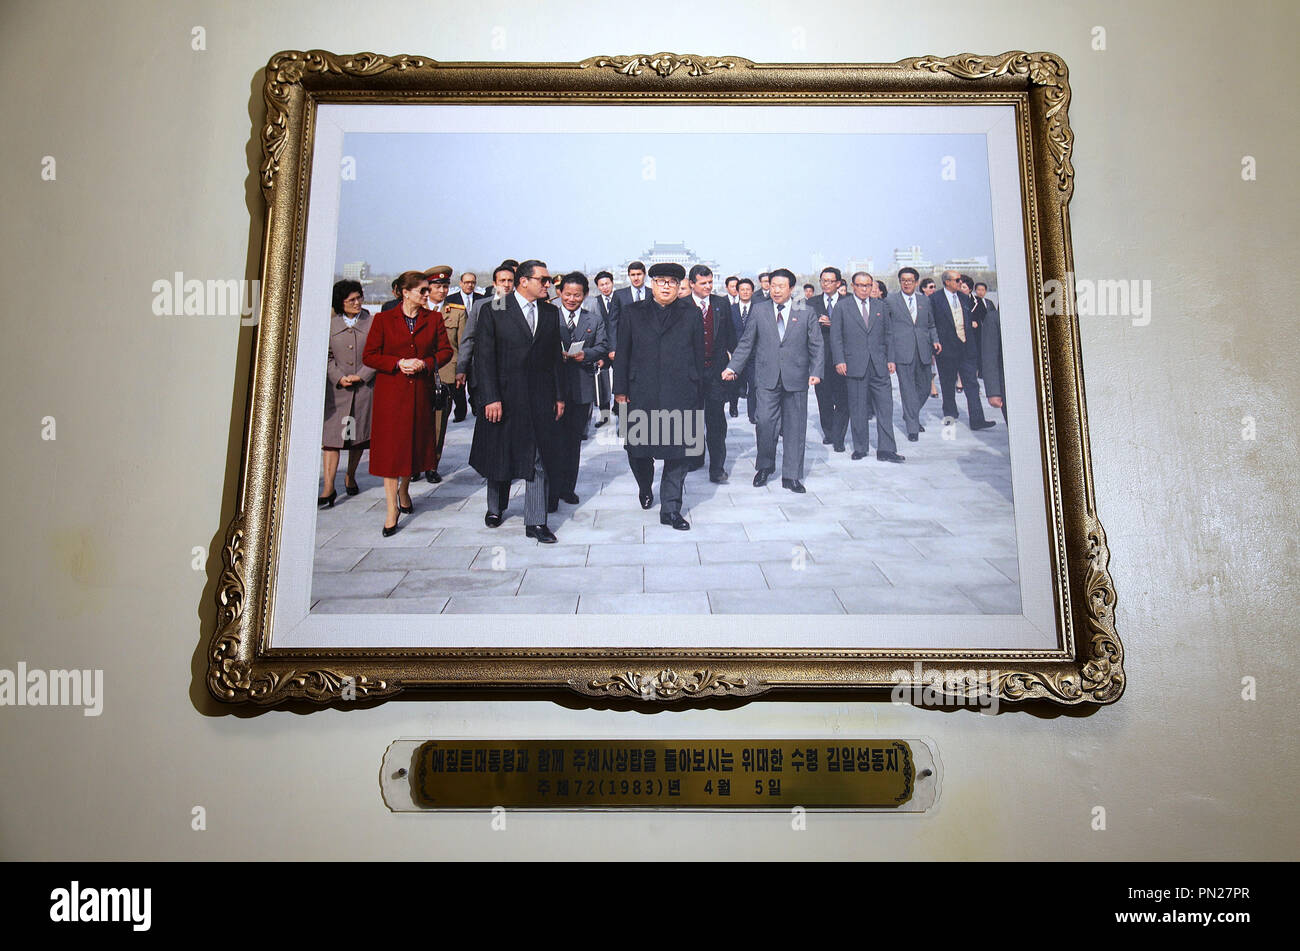 Photo of Kim Il Sung with President Mubarak of Egypt on display at the Grand Peoples Study House in Pyongyang - Stock Image